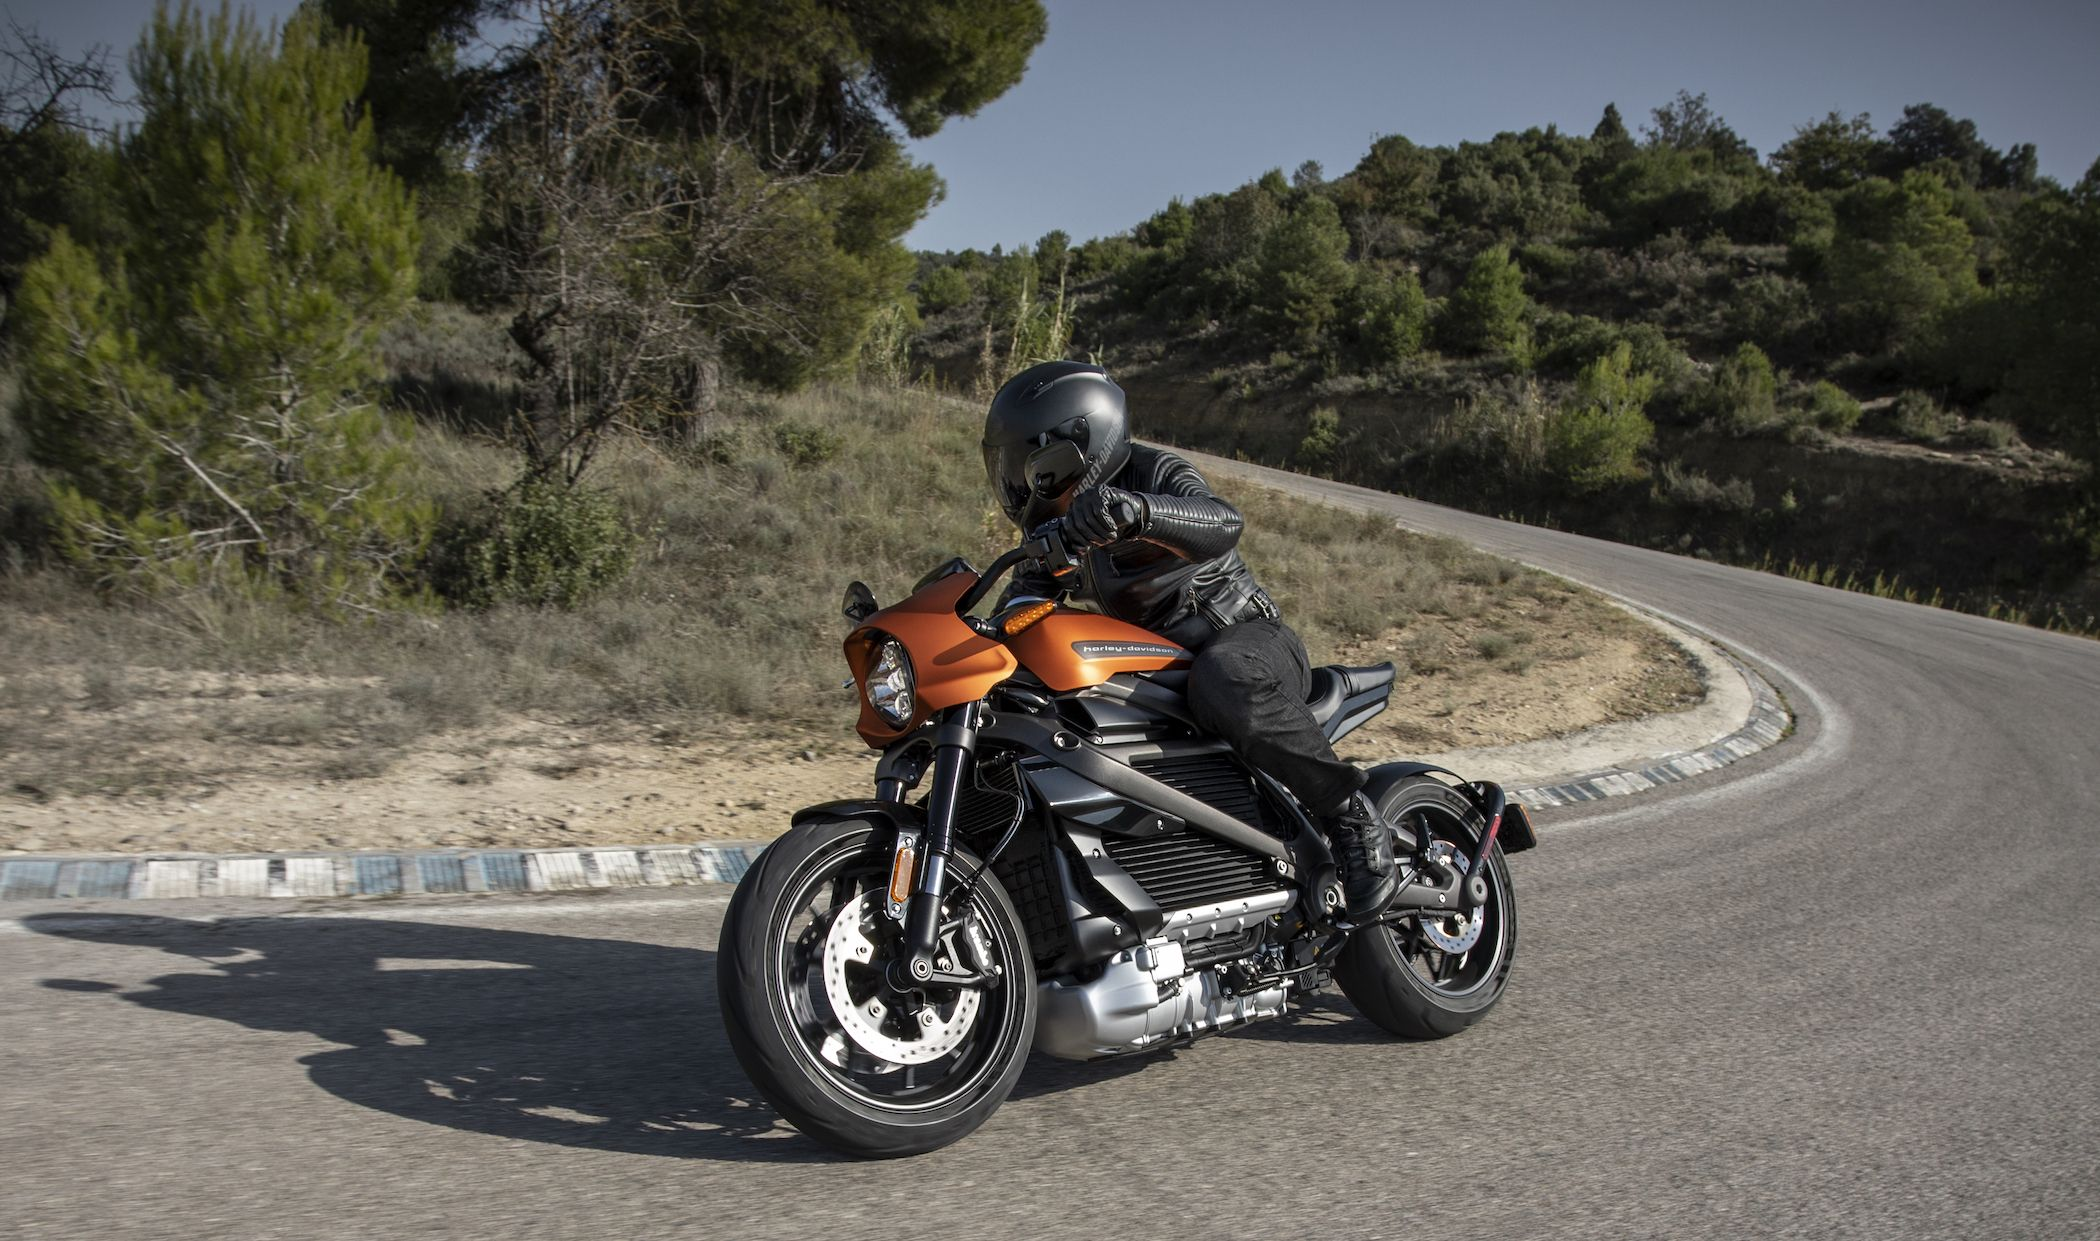 The Harley Davidson Livewire Electric Motorcycle Goes Public